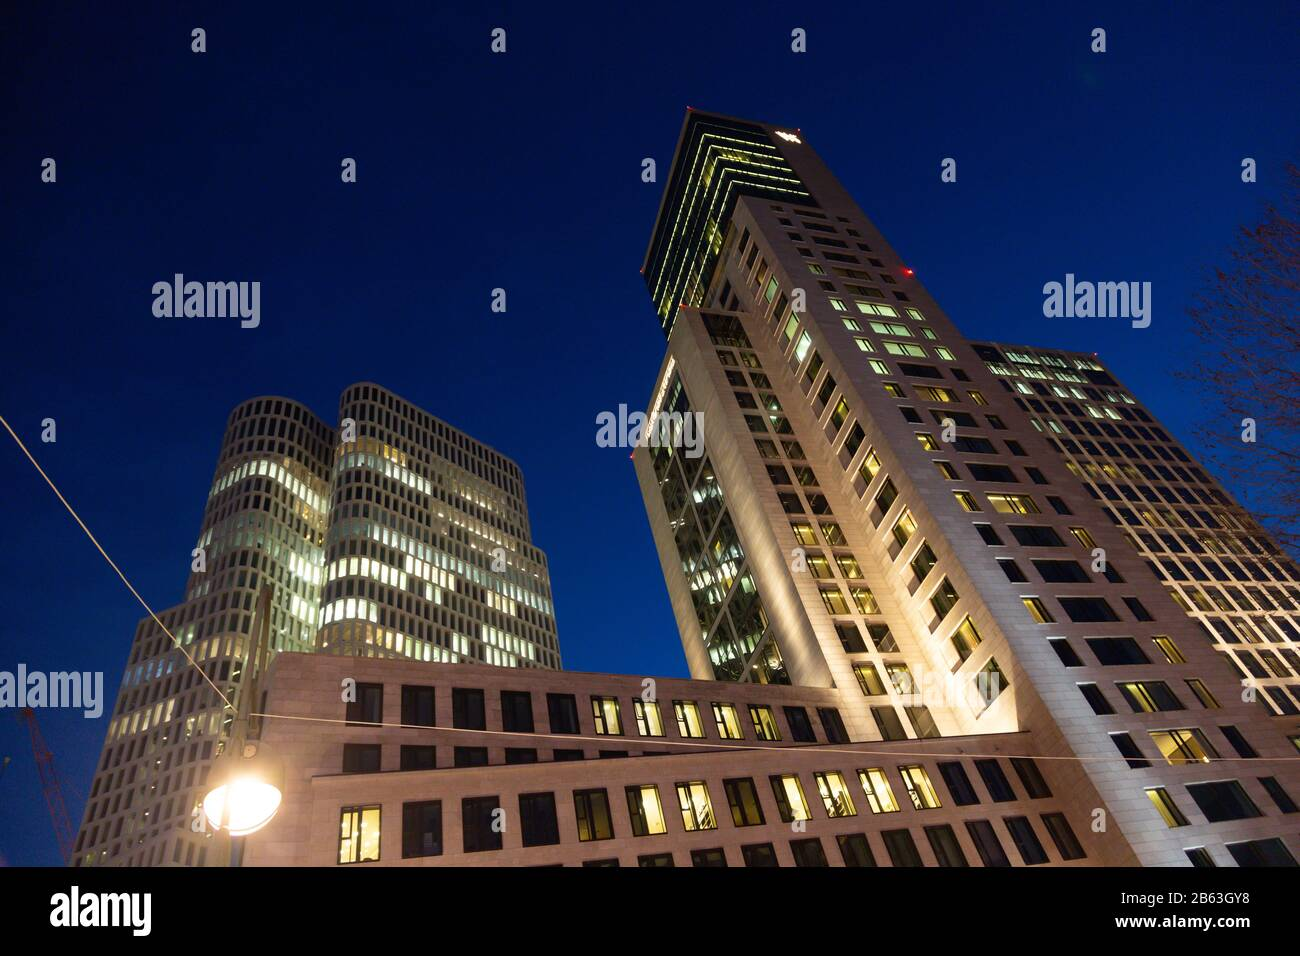 Residential And Office Building With Hotel Motel One Berlin Upper West And Waldorf Astoria In Charlottenburg Berlin Germany Stock Photo Alamy